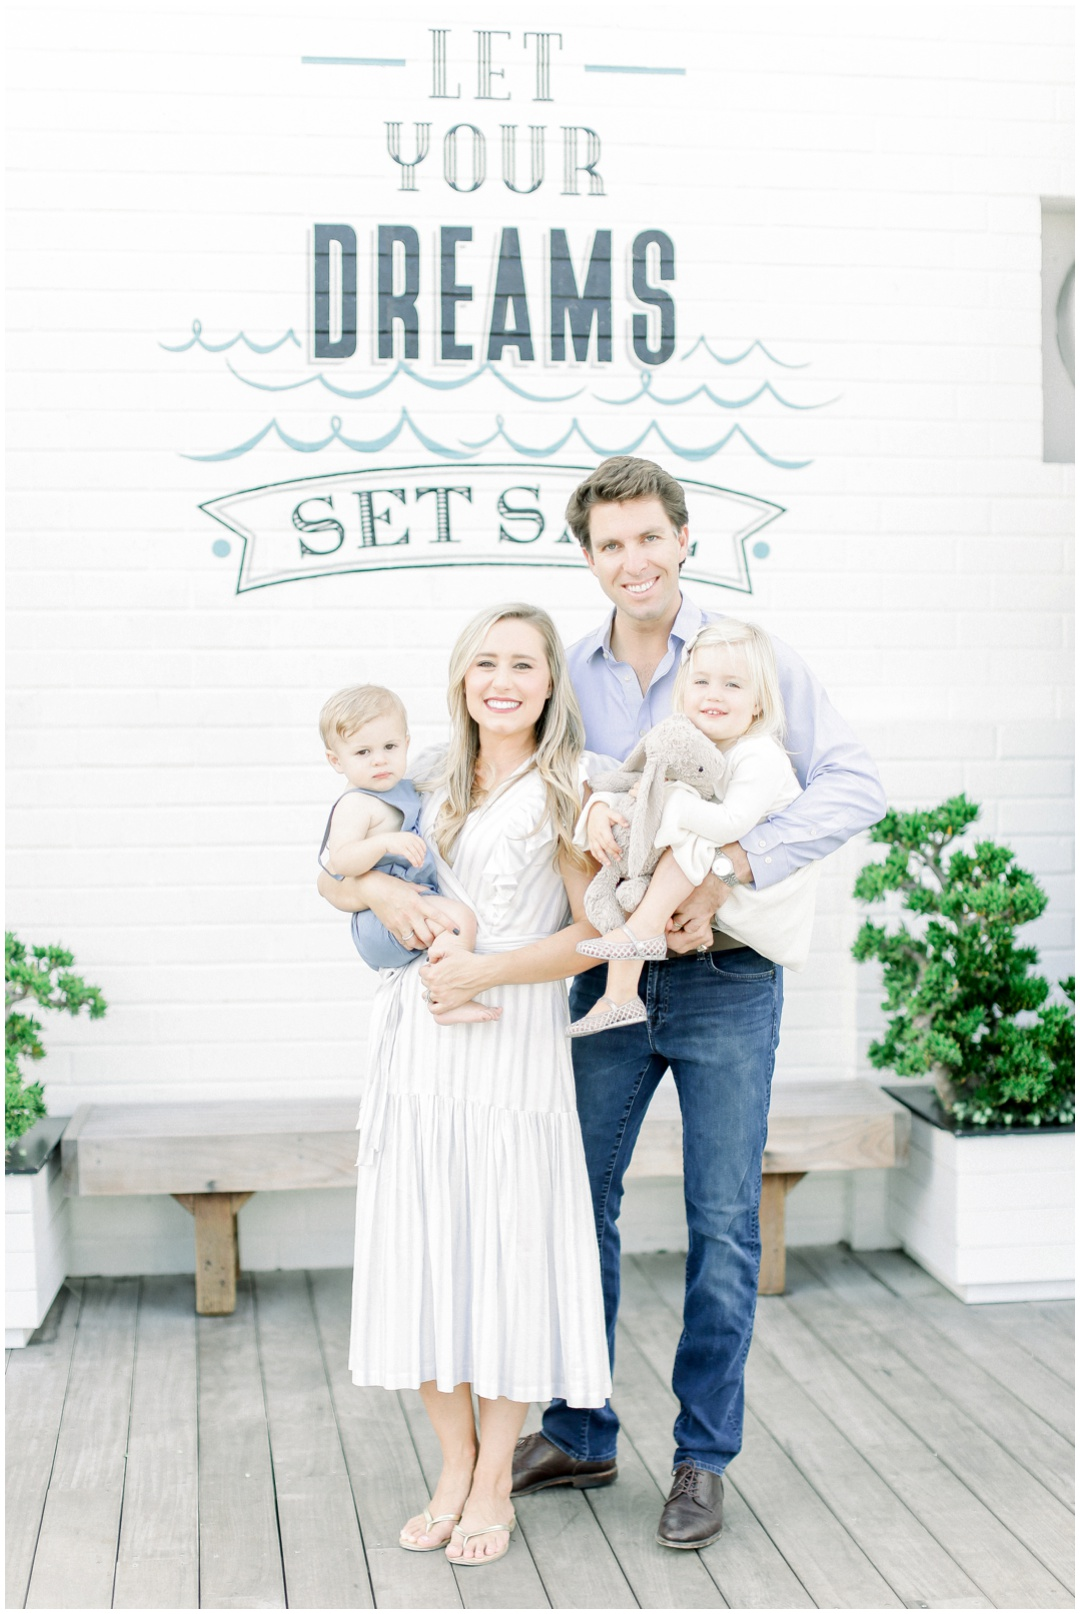 Lido_Marina_Village_Session_Photographer_Newport_Beach_Family_Photographer_Newport_Beach_Newborn_Photographer_Orange_County_Family_Photographer_Cori_Kleckner_Photography_Huntington_Beach_Photographer_Lara_Langford_Family_Session_2651.jpg